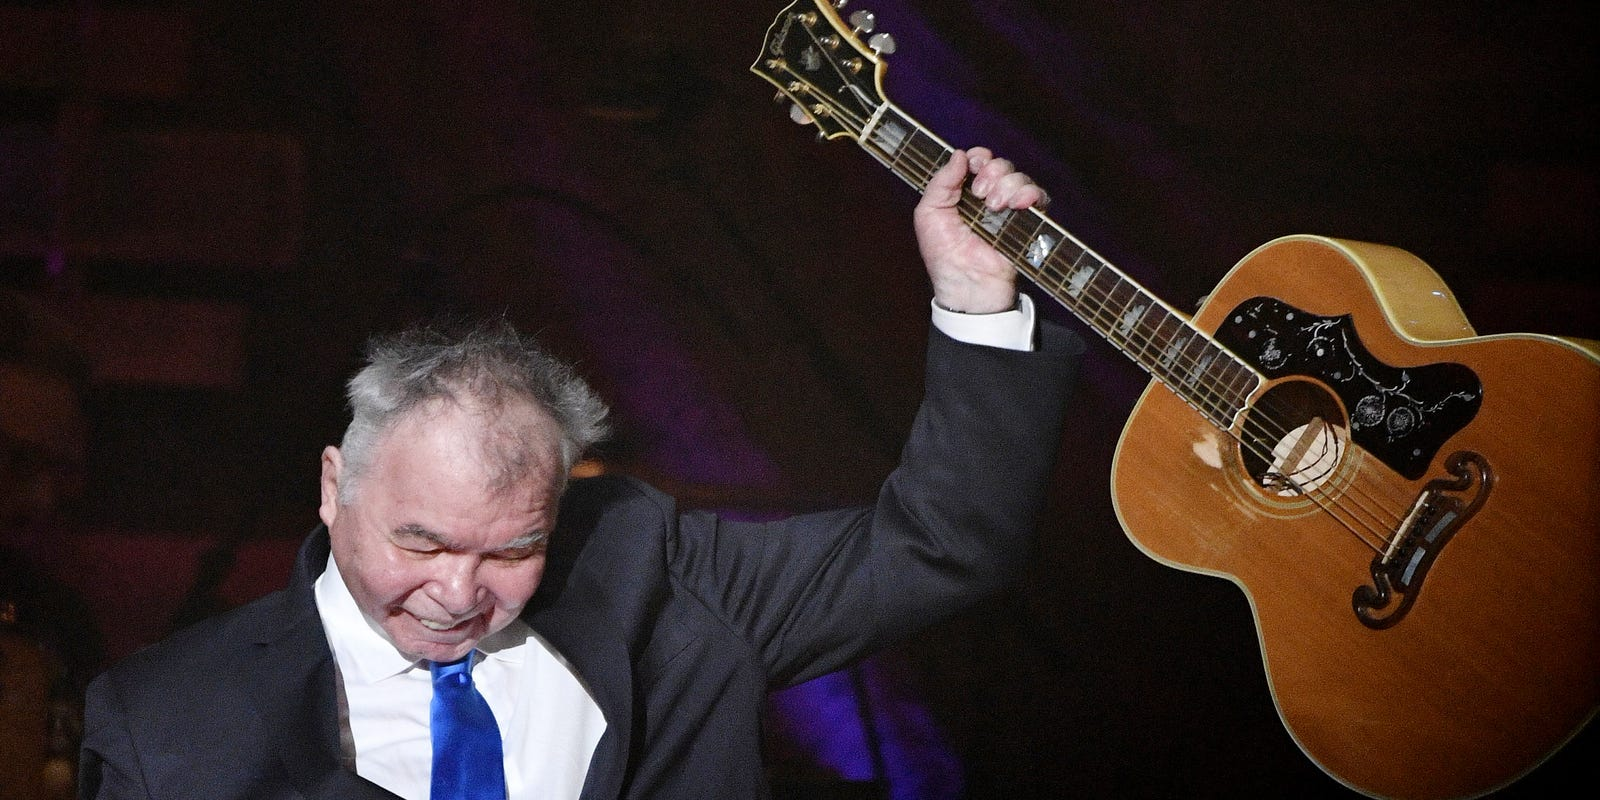 Play John Prine's music. Play it as loud as possible.